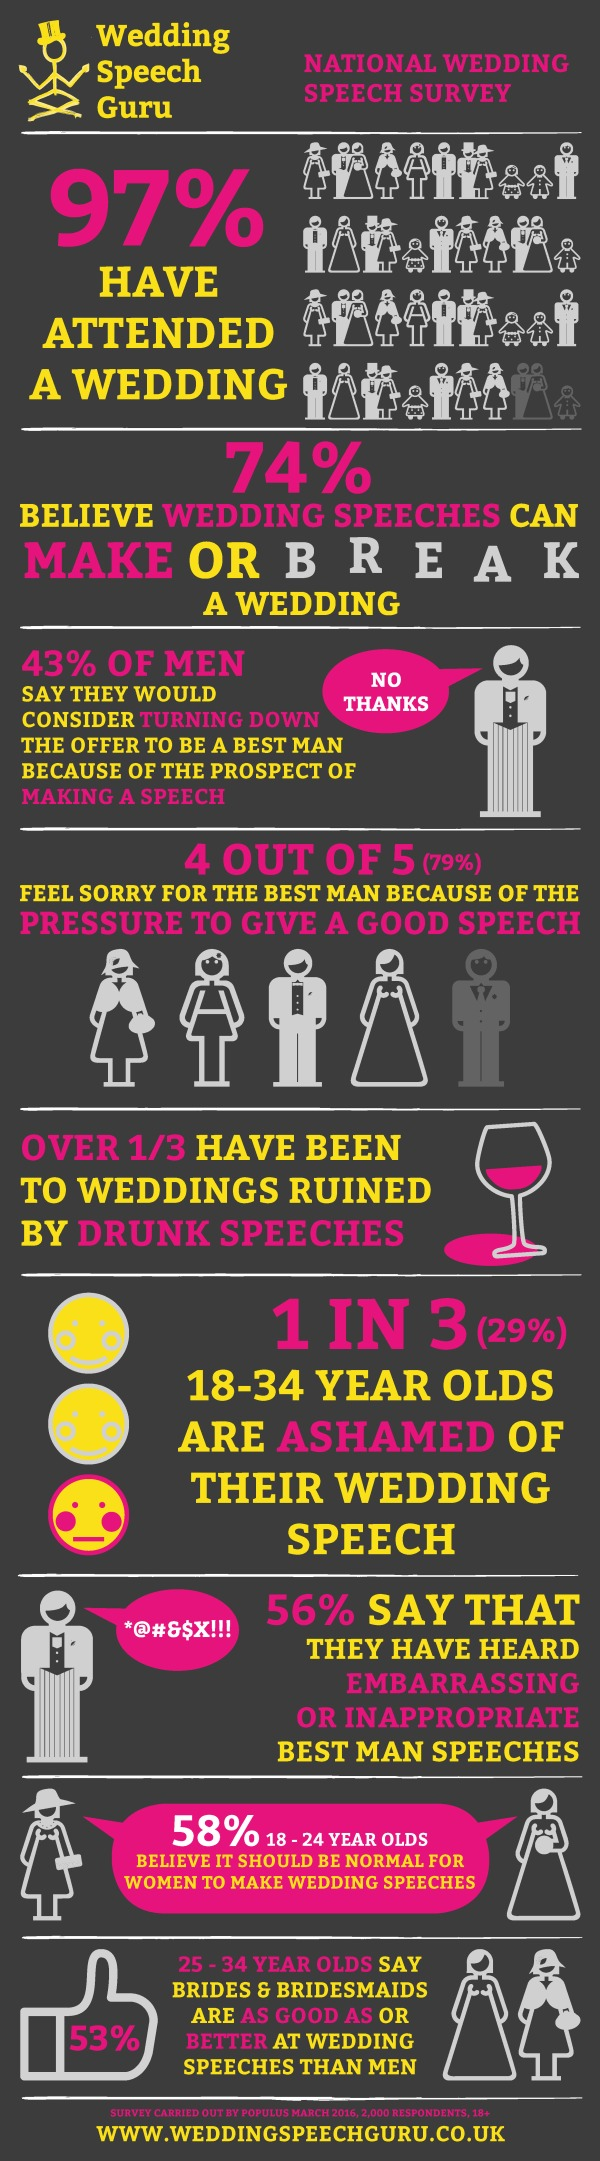 the wedding speech guru best man boot camp